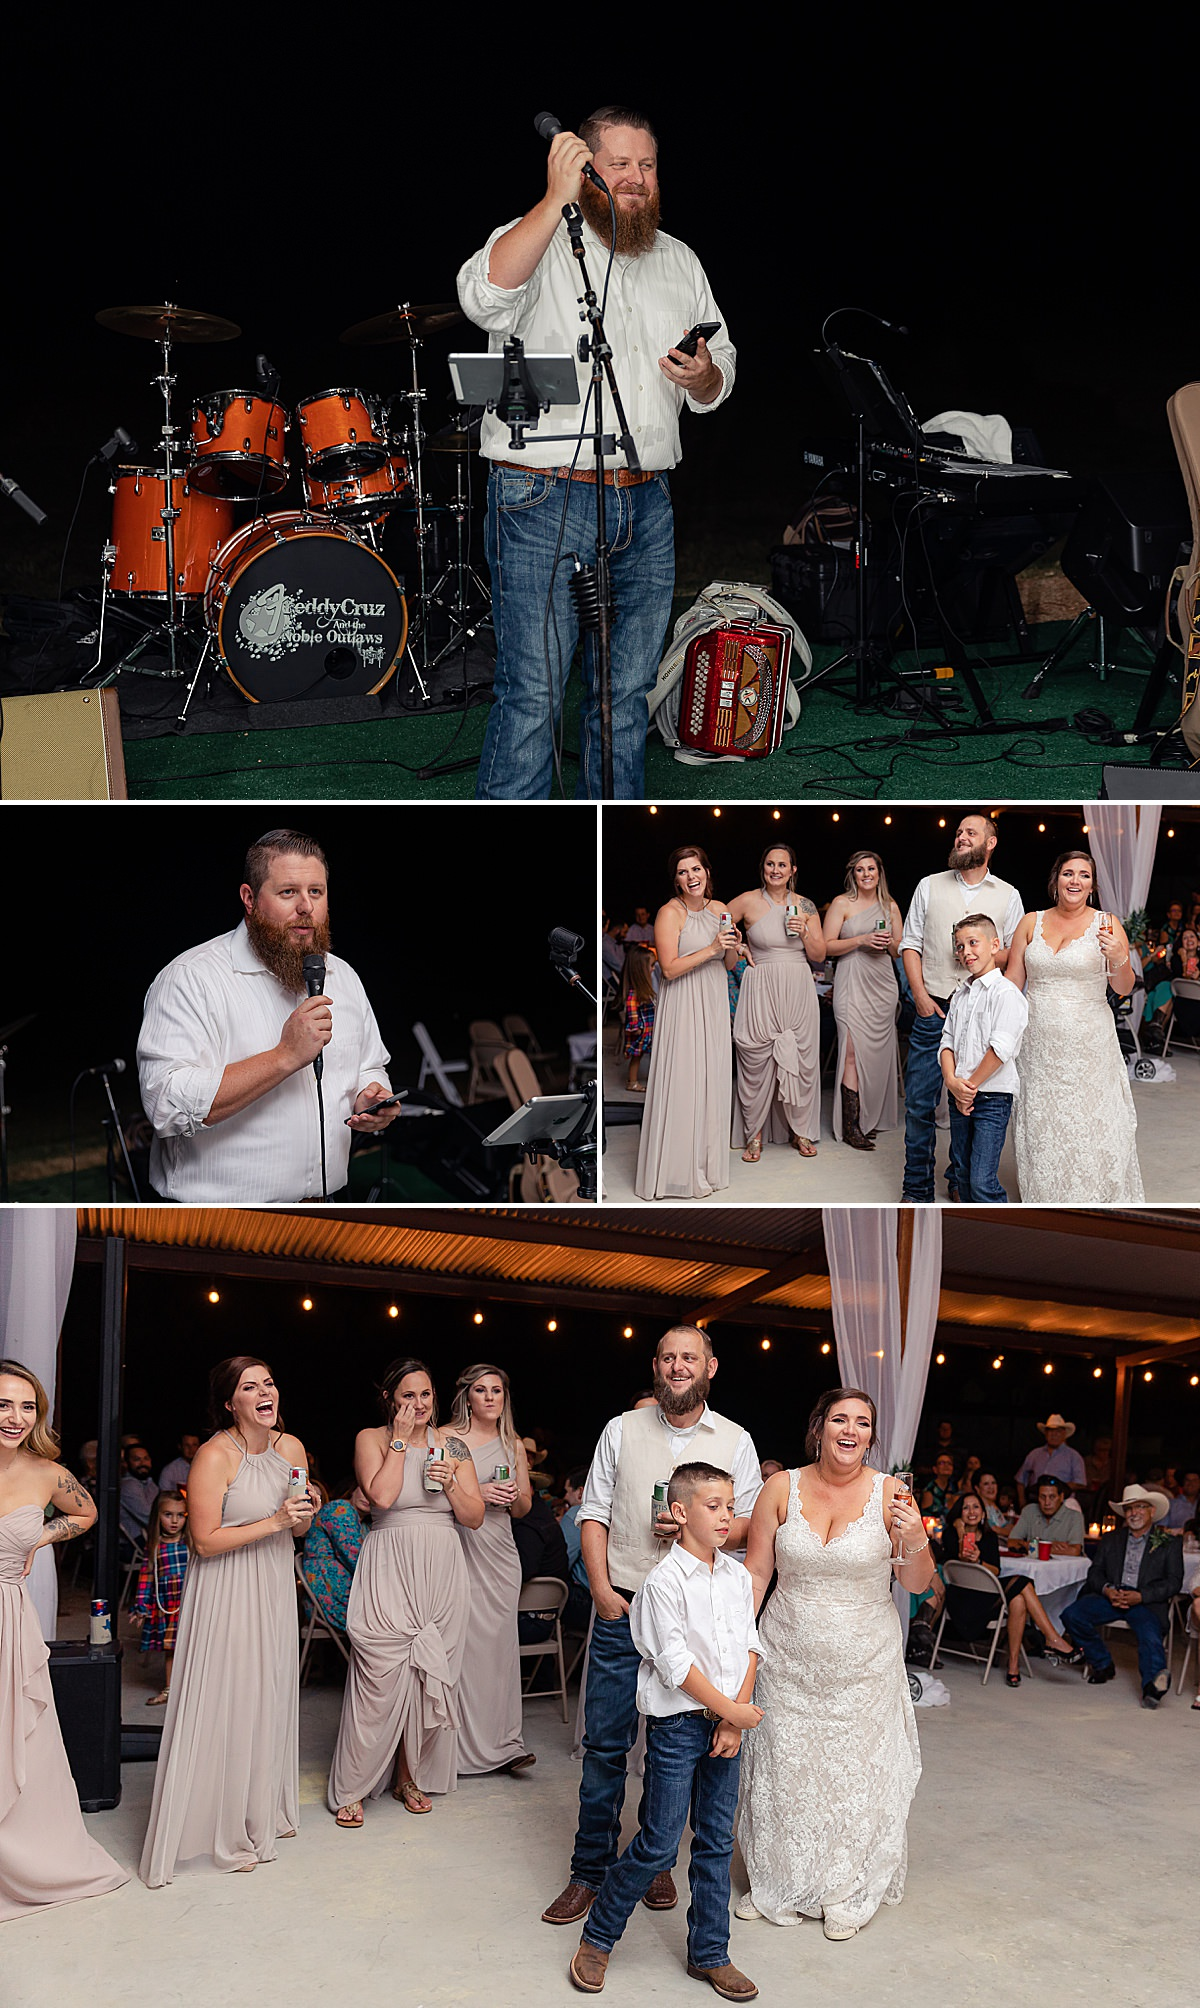 Rustic-Texas-Wedding-Hollow-Creek-Ranch-Carly-Barton-Photography_0049.jpg